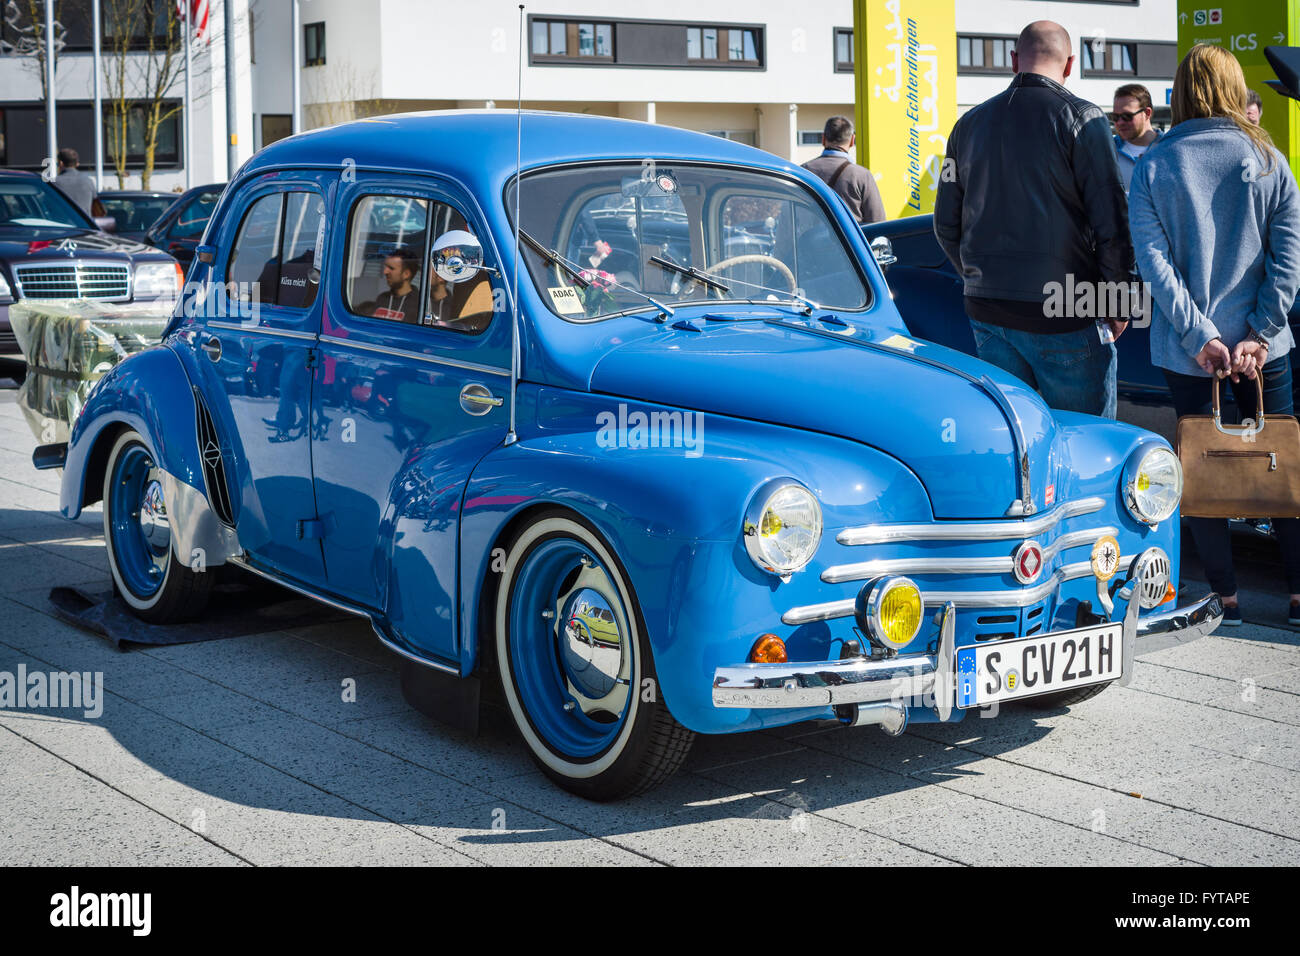 renault 4cv stock photos renault 4cv stock images alamy. Black Bedroom Furniture Sets. Home Design Ideas